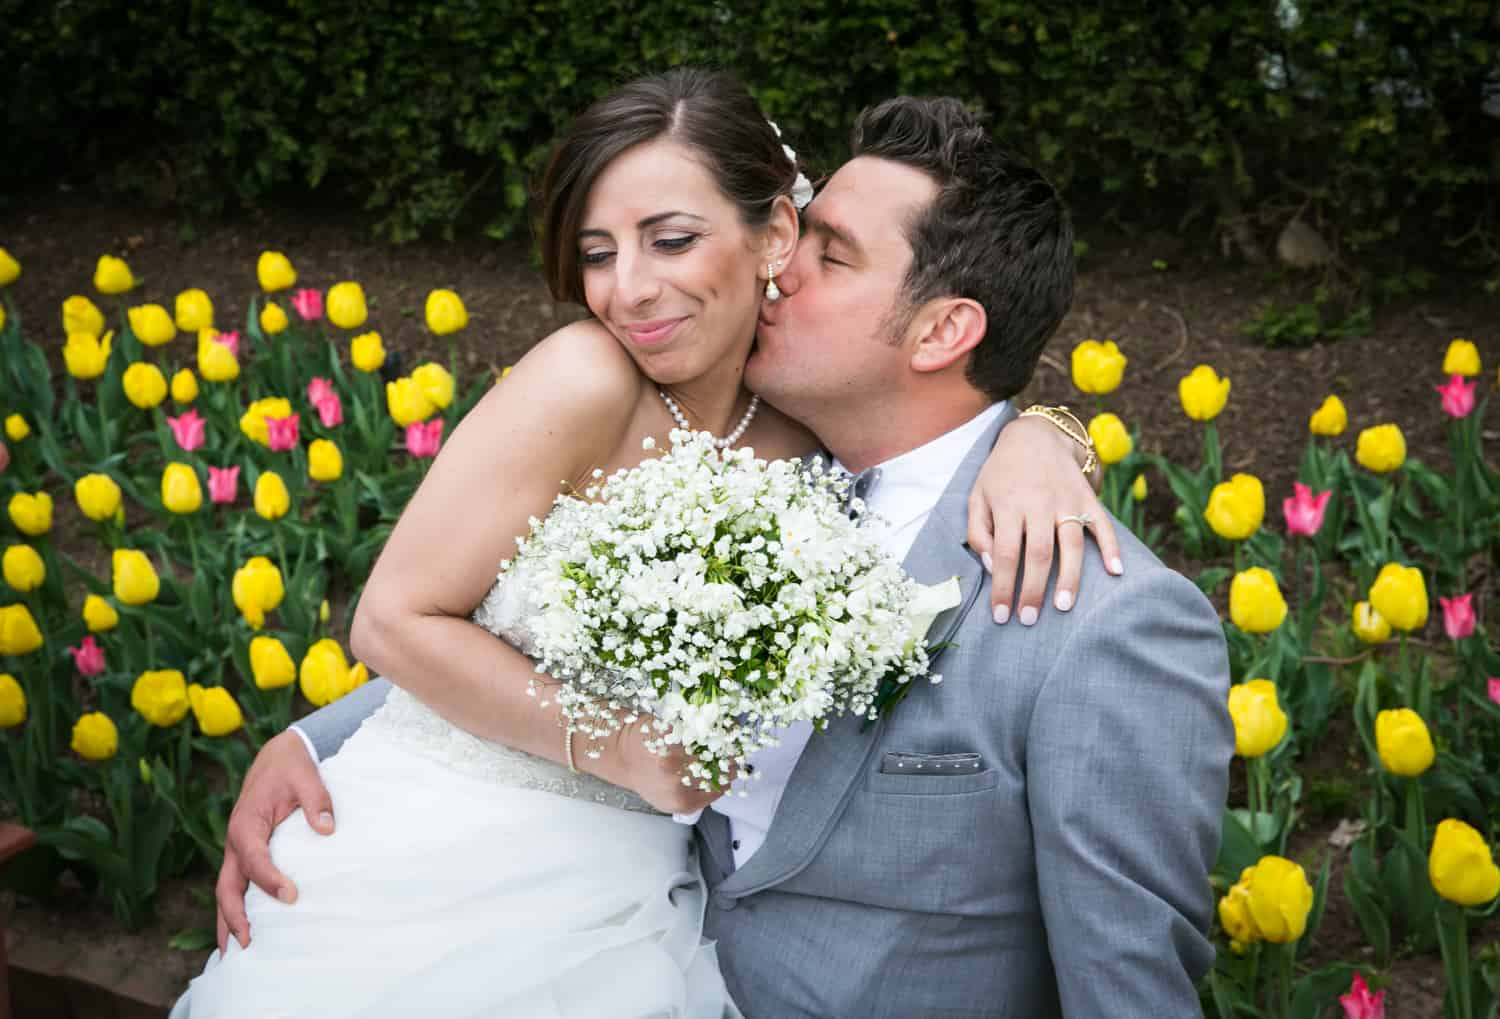 Groom kissing bride on cheek for an article called 'Do you need a second photographer?'